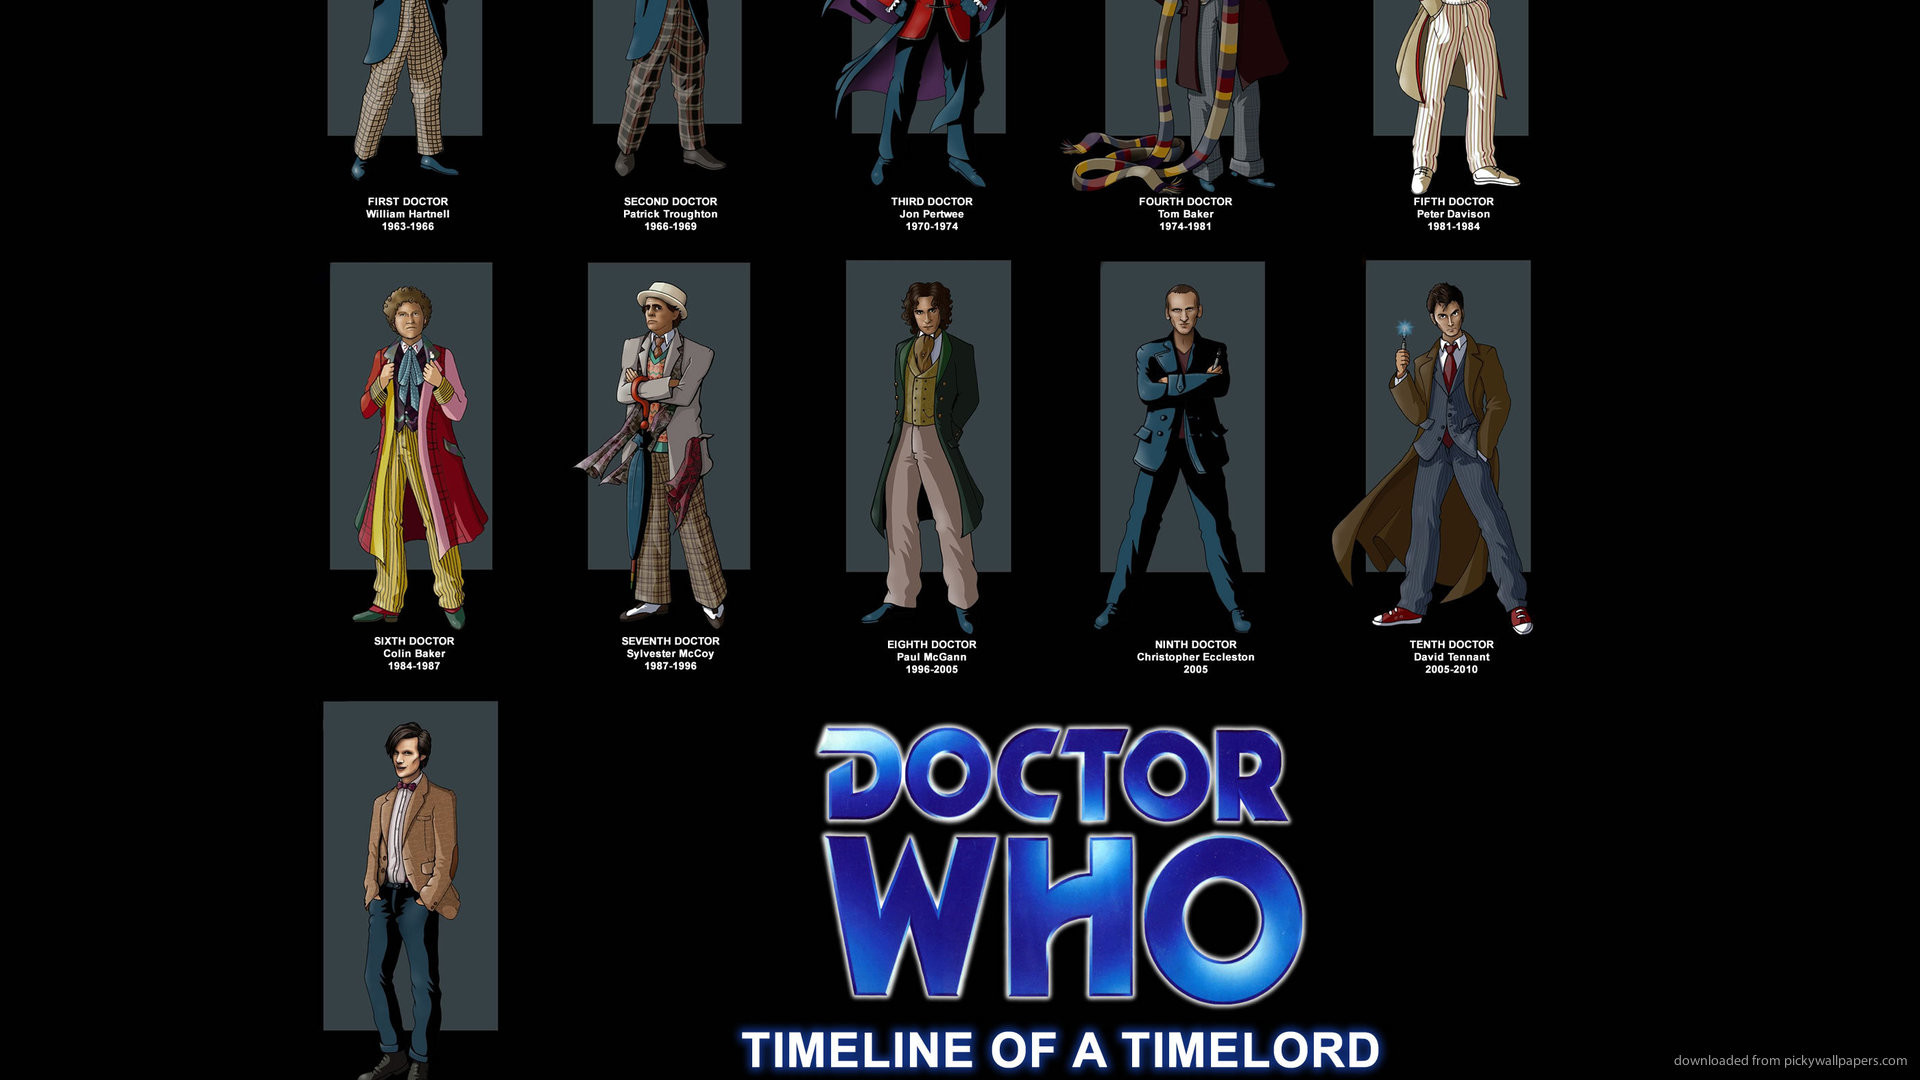 Doctor Who Timeline Of A Timelord picture